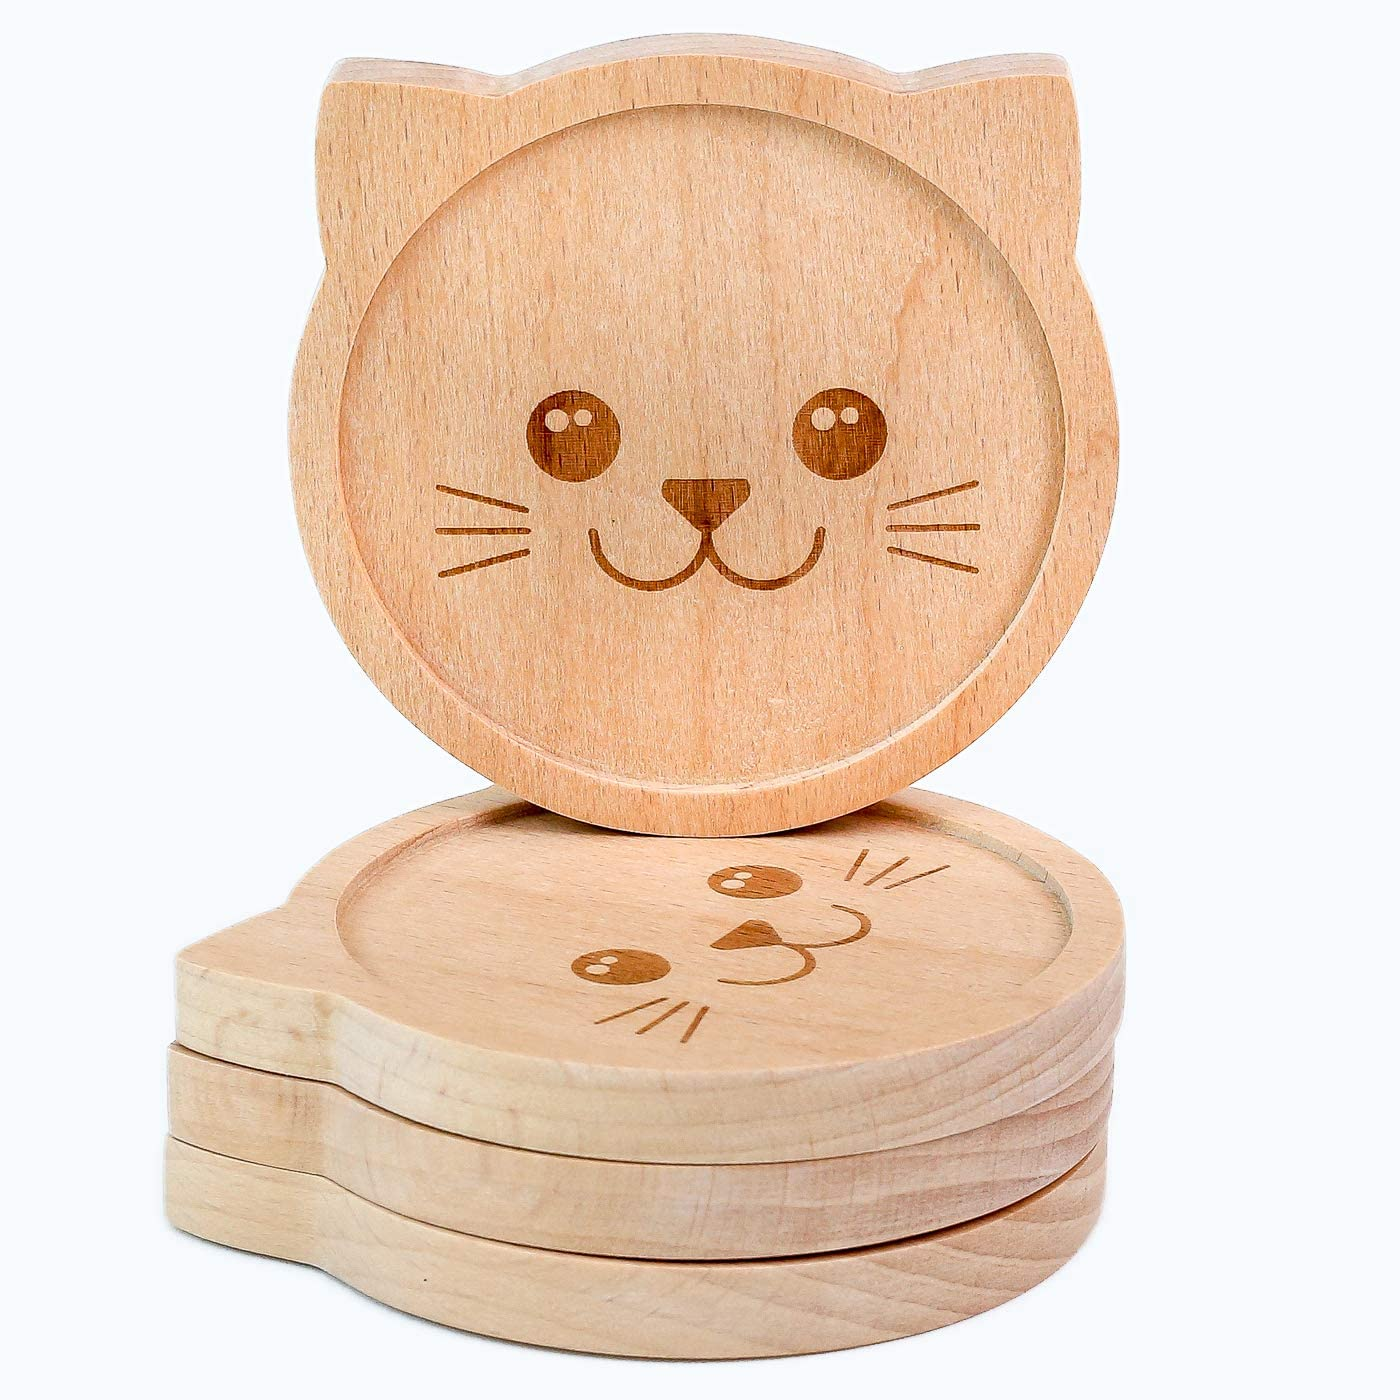 Mirana Set of 4 Natural Wood Drink Coasters, Cat Coasters so Cute & Beautiful, Wooden Coasters, Perfect for Home Decor in Kitchen, Bedroom, Office or Tabletop, Wedding Gift